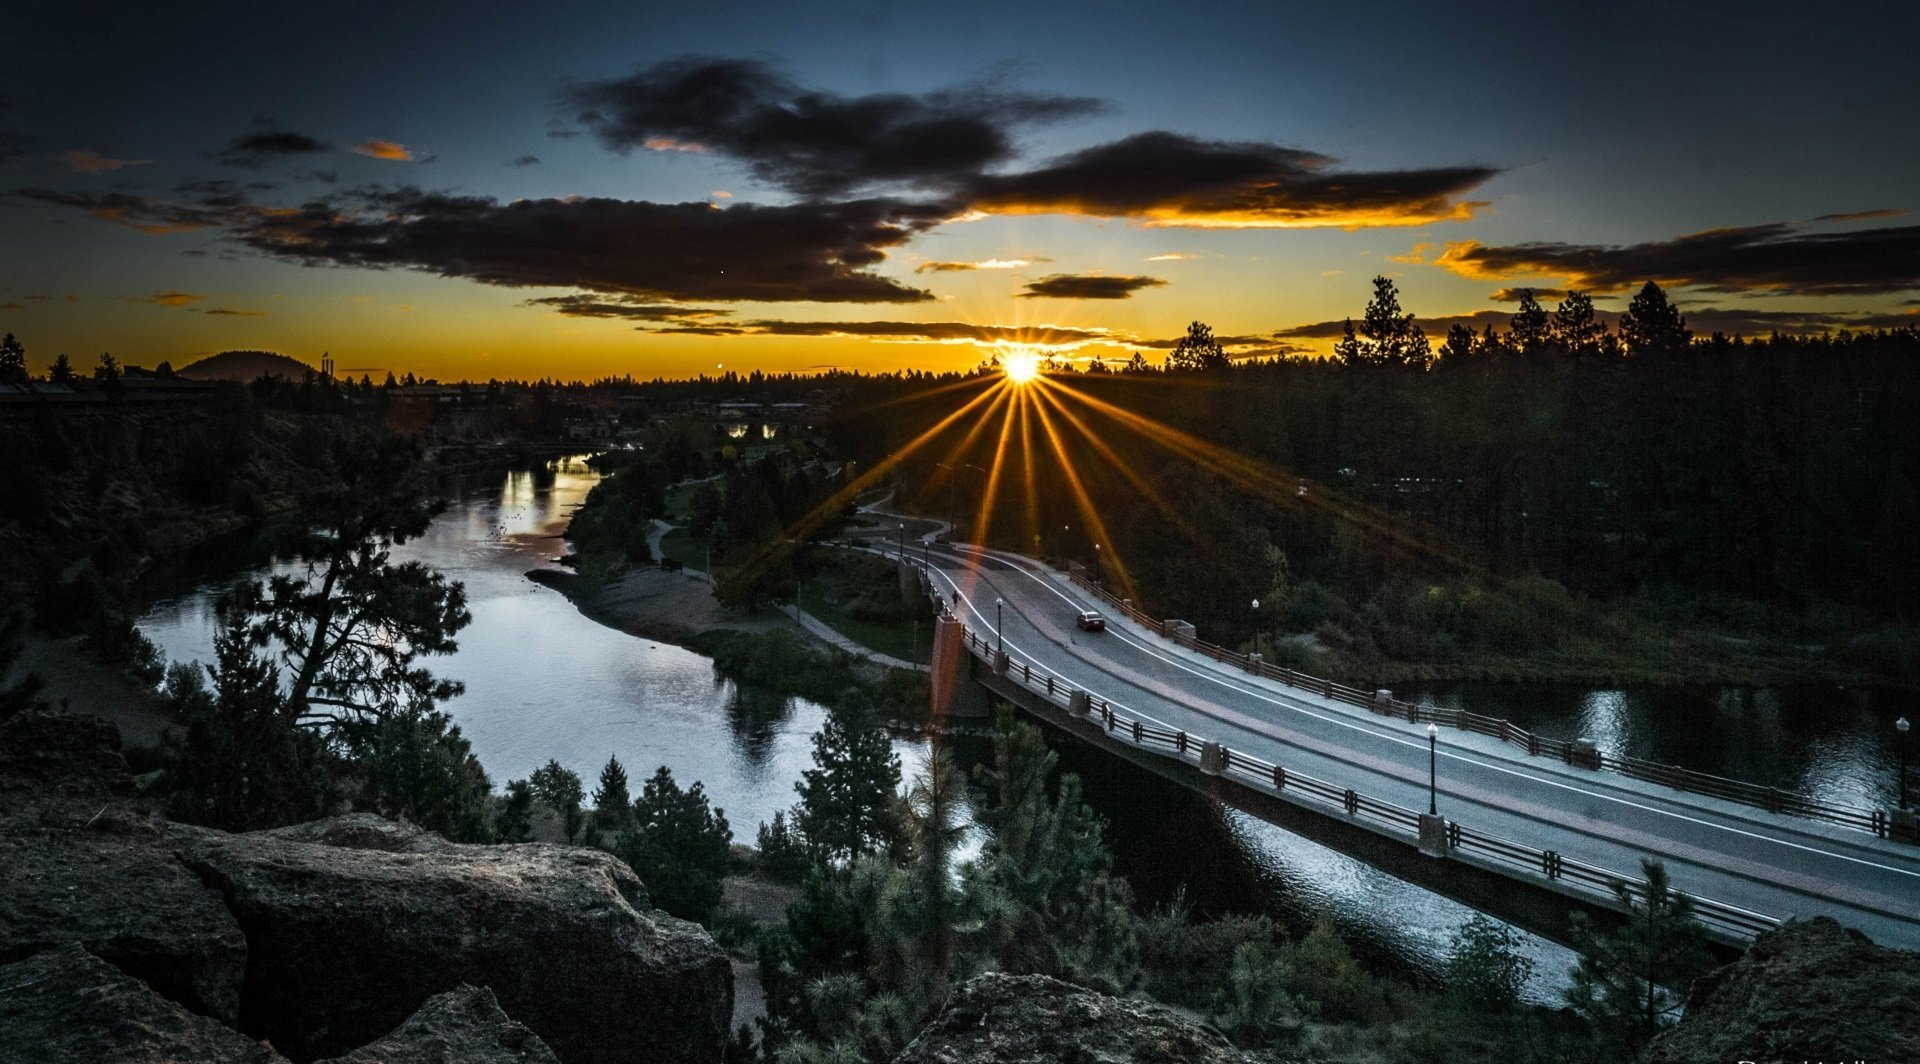 Sunrise in Bend Oregon